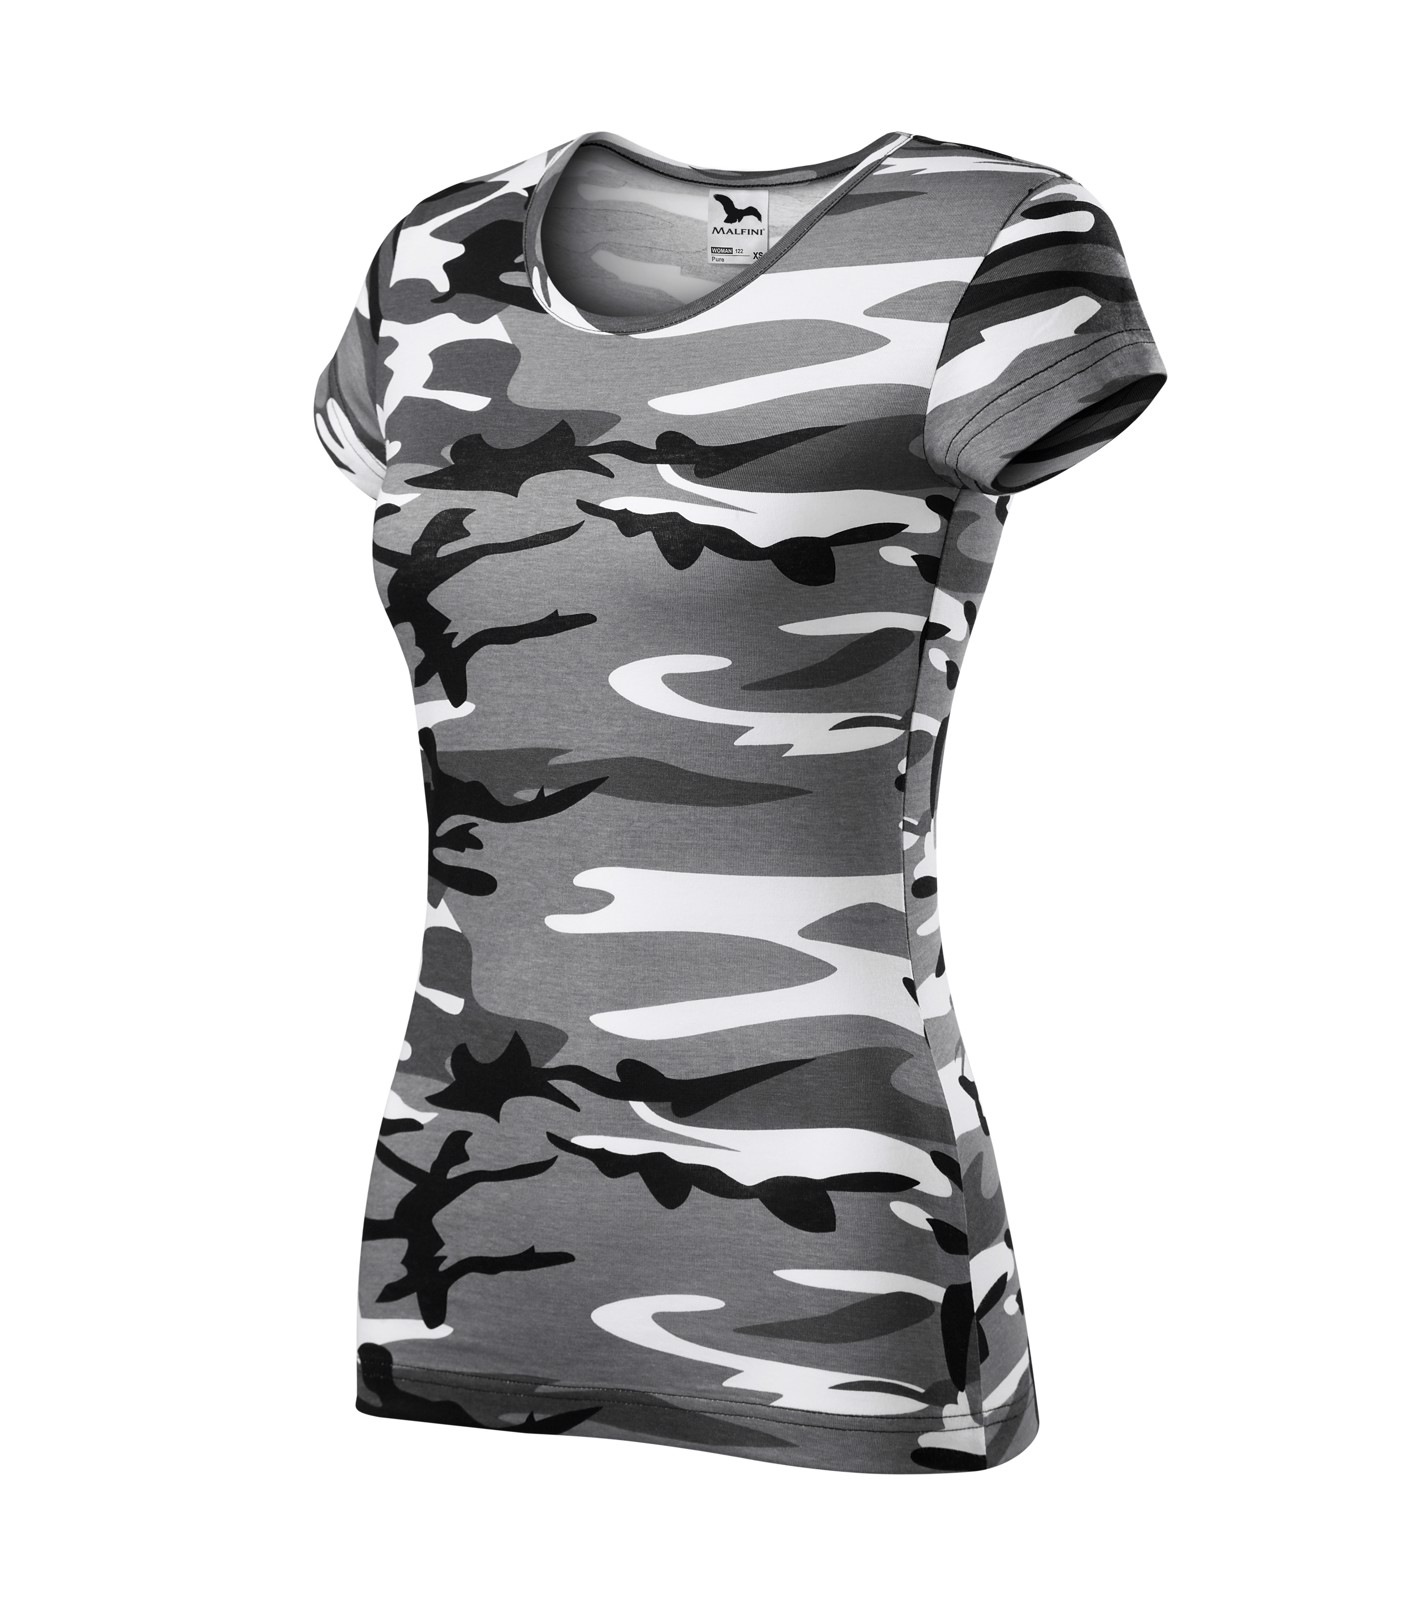 T-shirt Ladies Malfini Pure - Camouflage Gray / XS